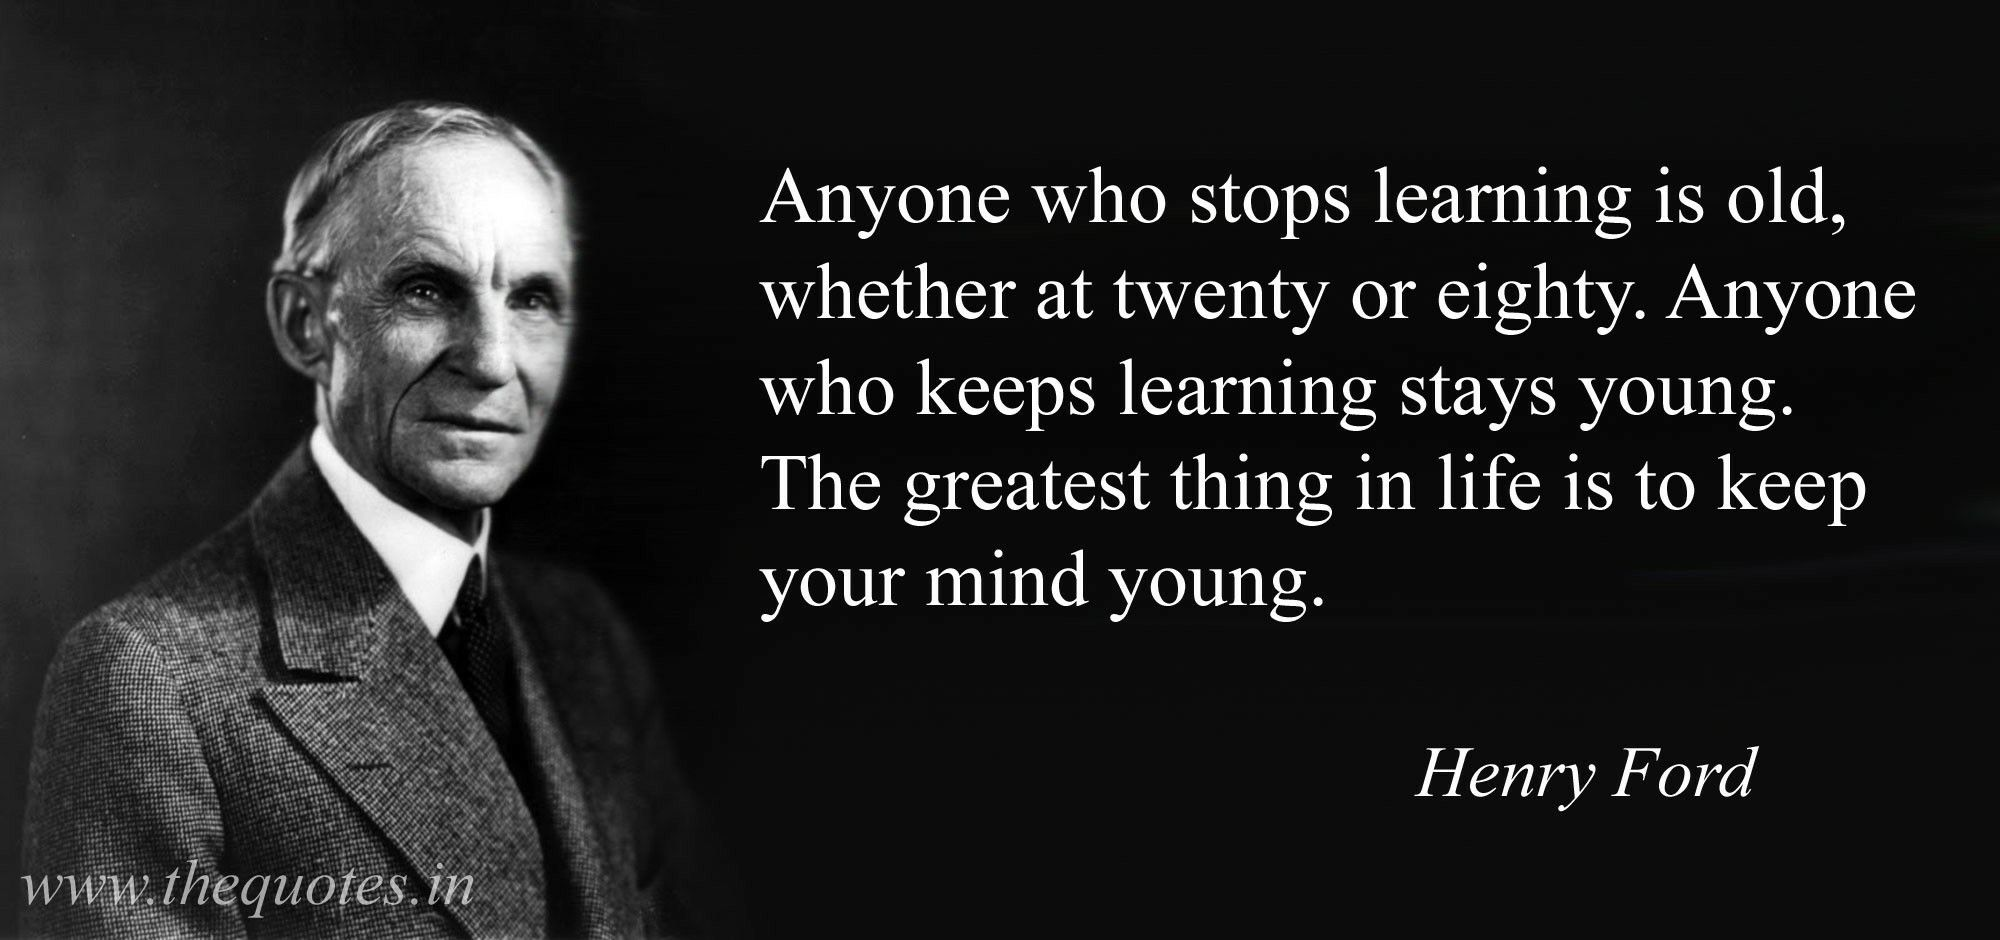 I Have No Clue How To Tell Who Actually Said Quotes Anymore Apparently This One Is Either Mark Twain Or Henry Ford Henry Ford Quotes Stay Young Promote Book